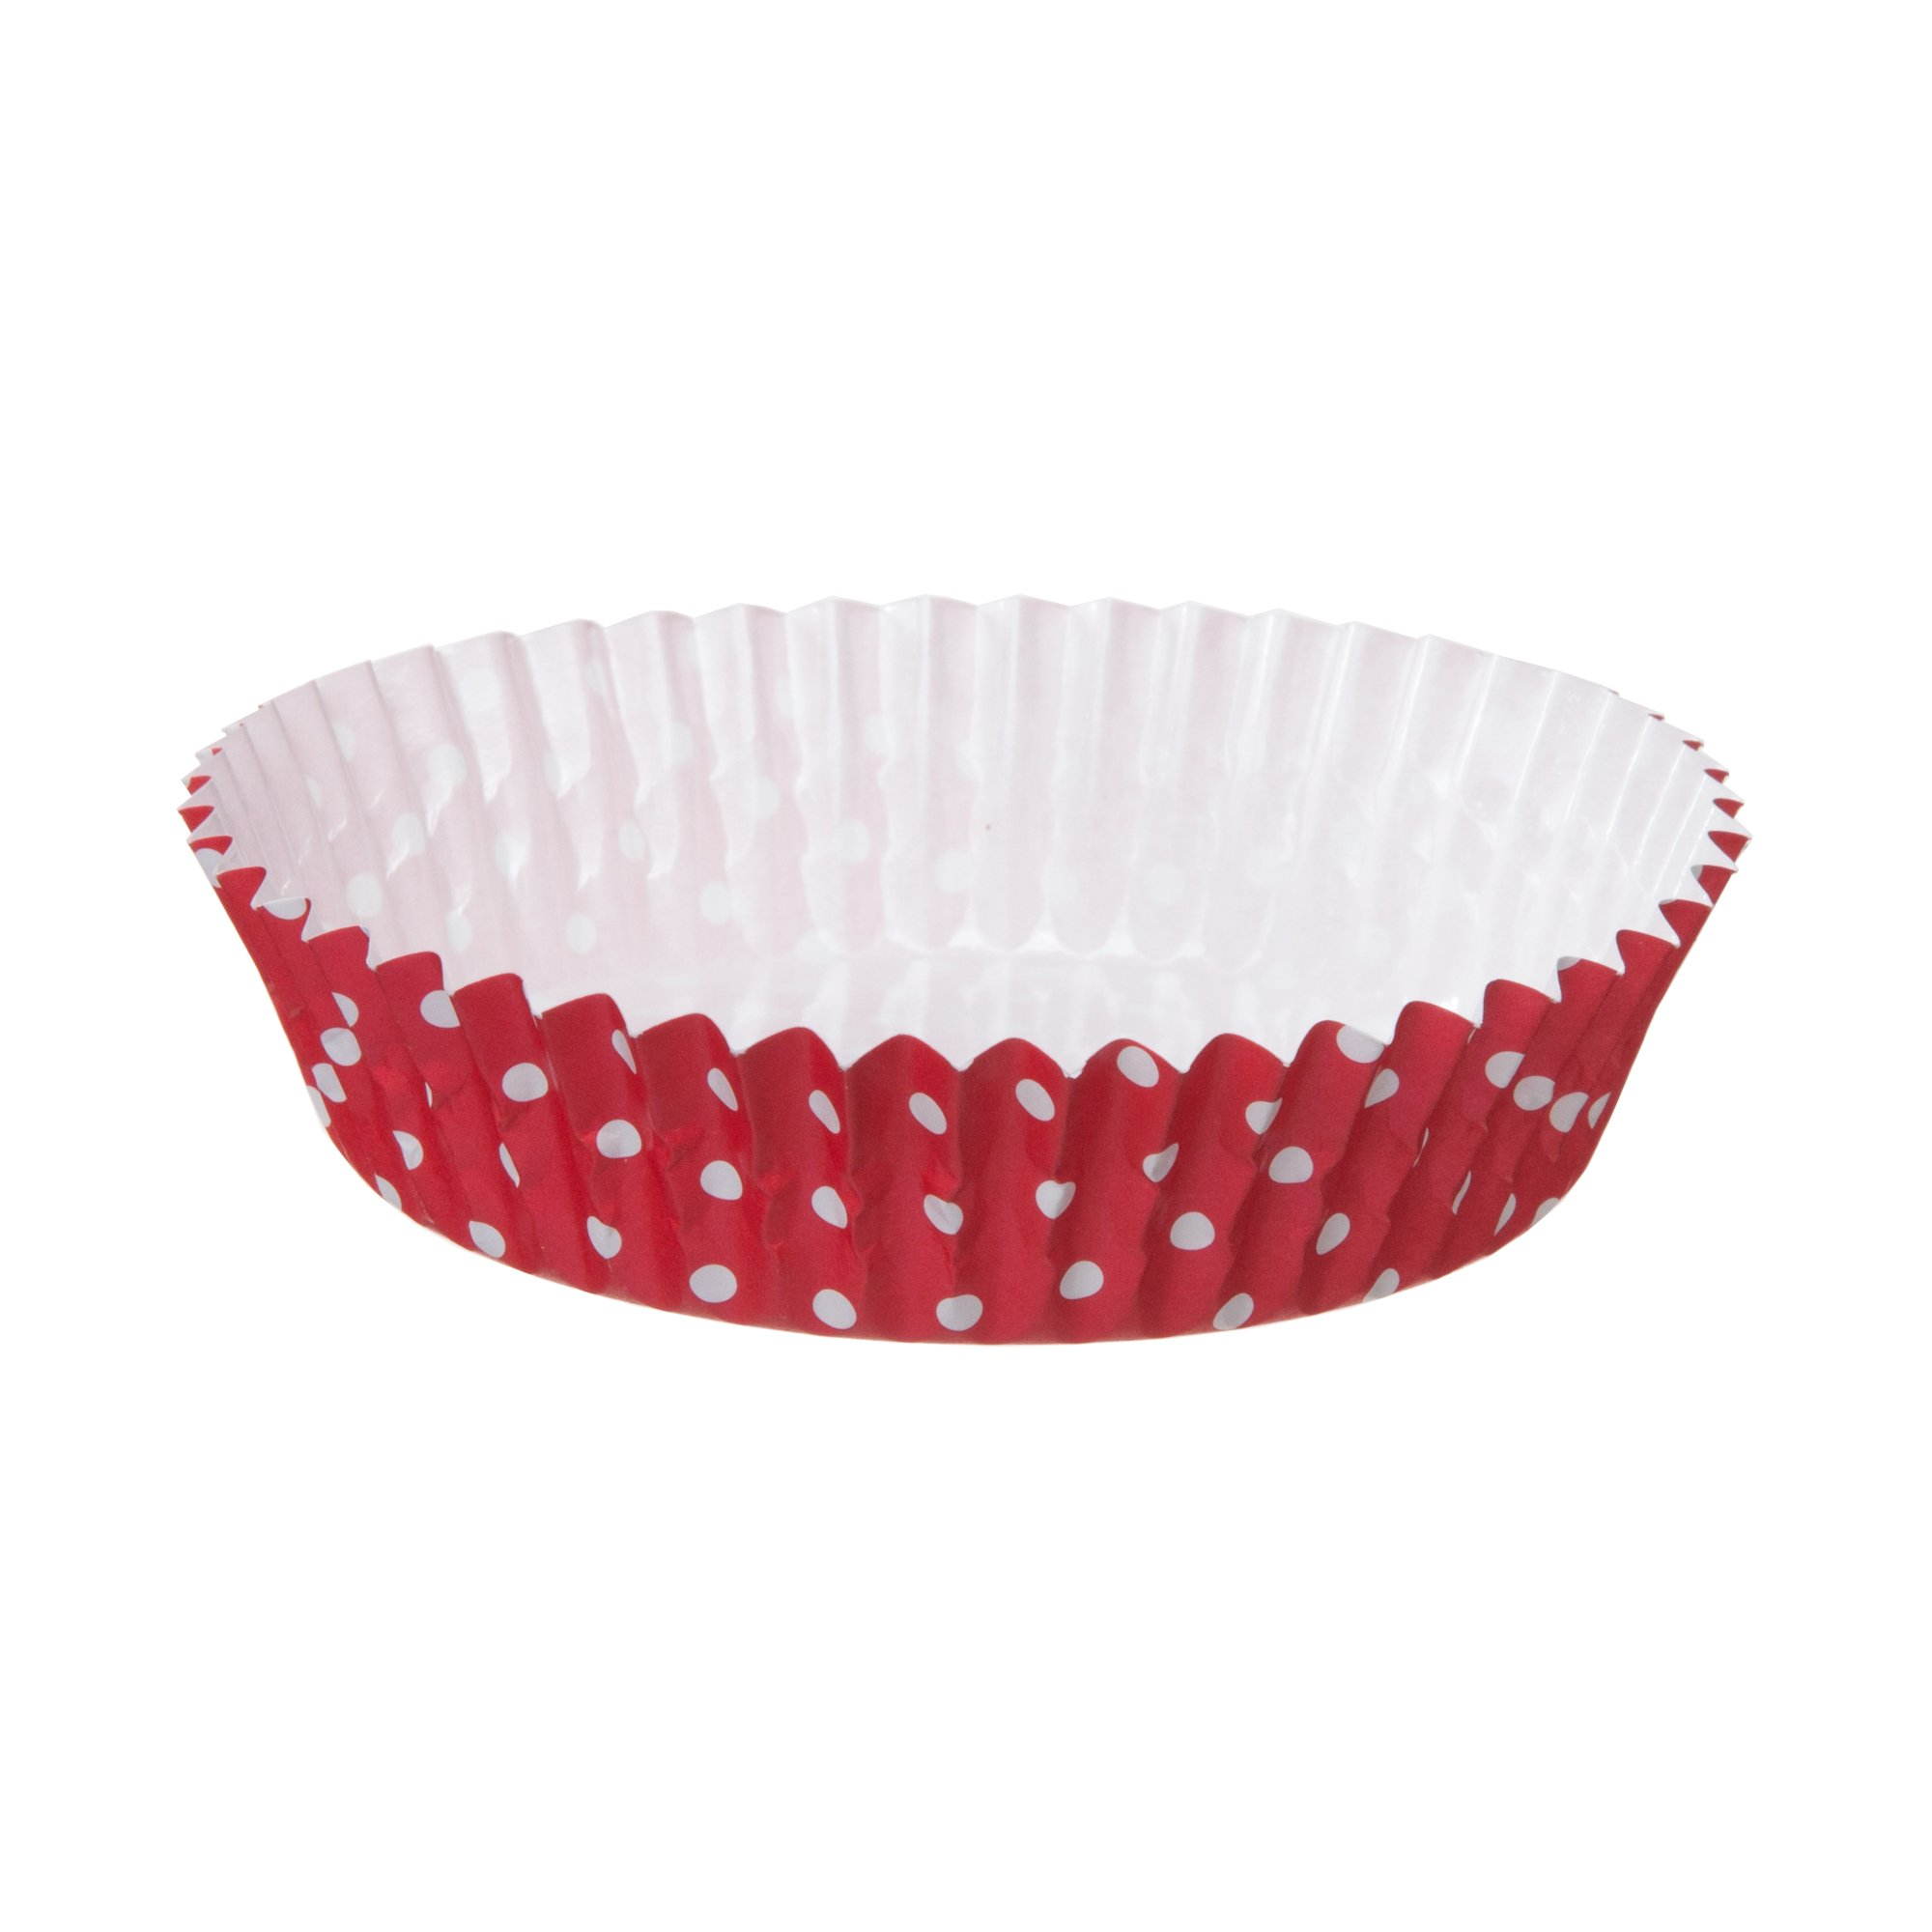 Welcome Home Brands Ruffled Baking Cups, Red with White Dots, 3.9''d x 1.2''h, Case/1500